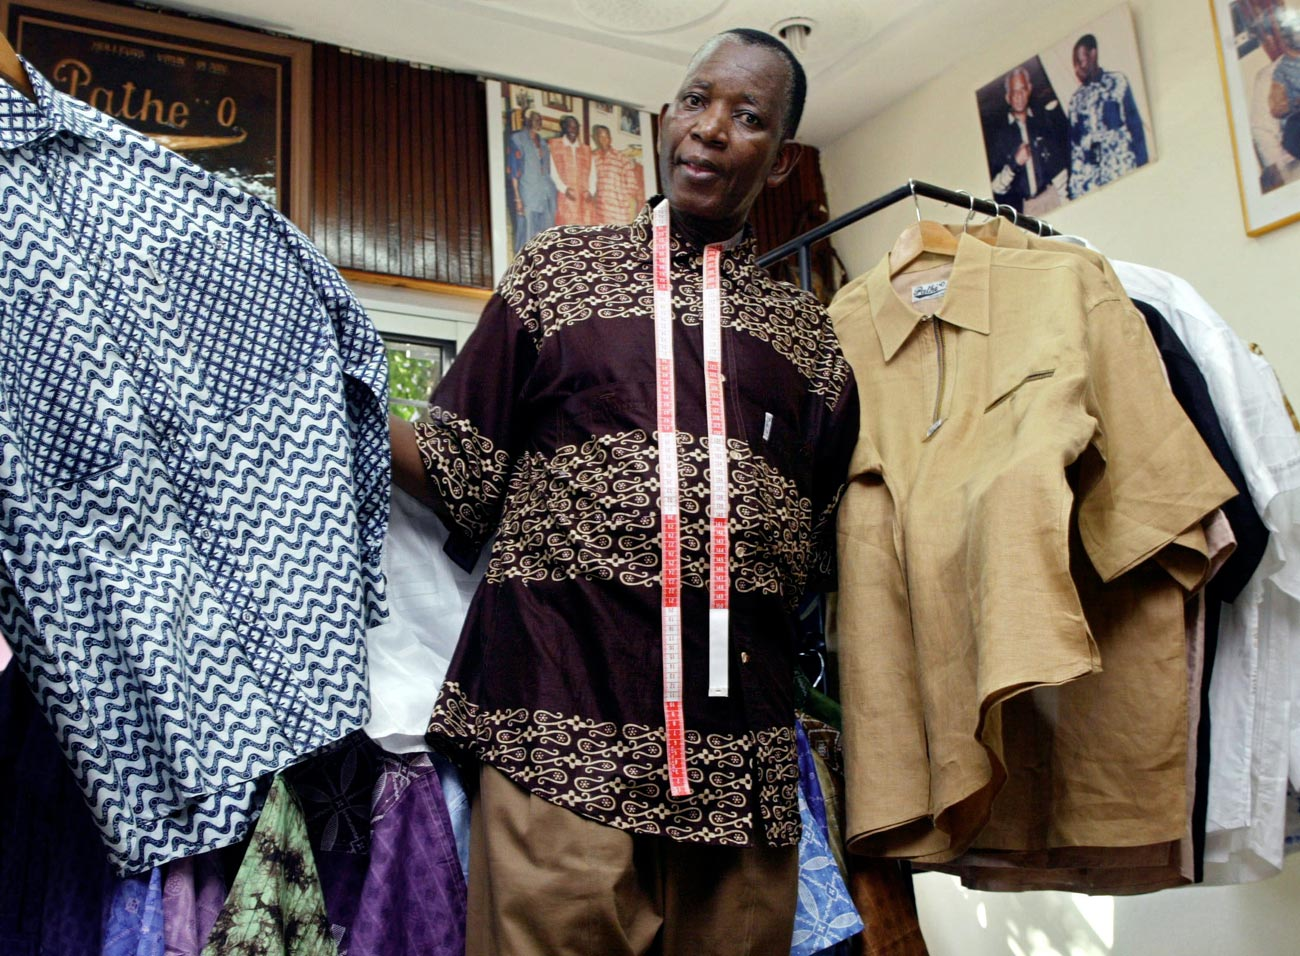 Mandela shirts showed he was true to himself: tailor